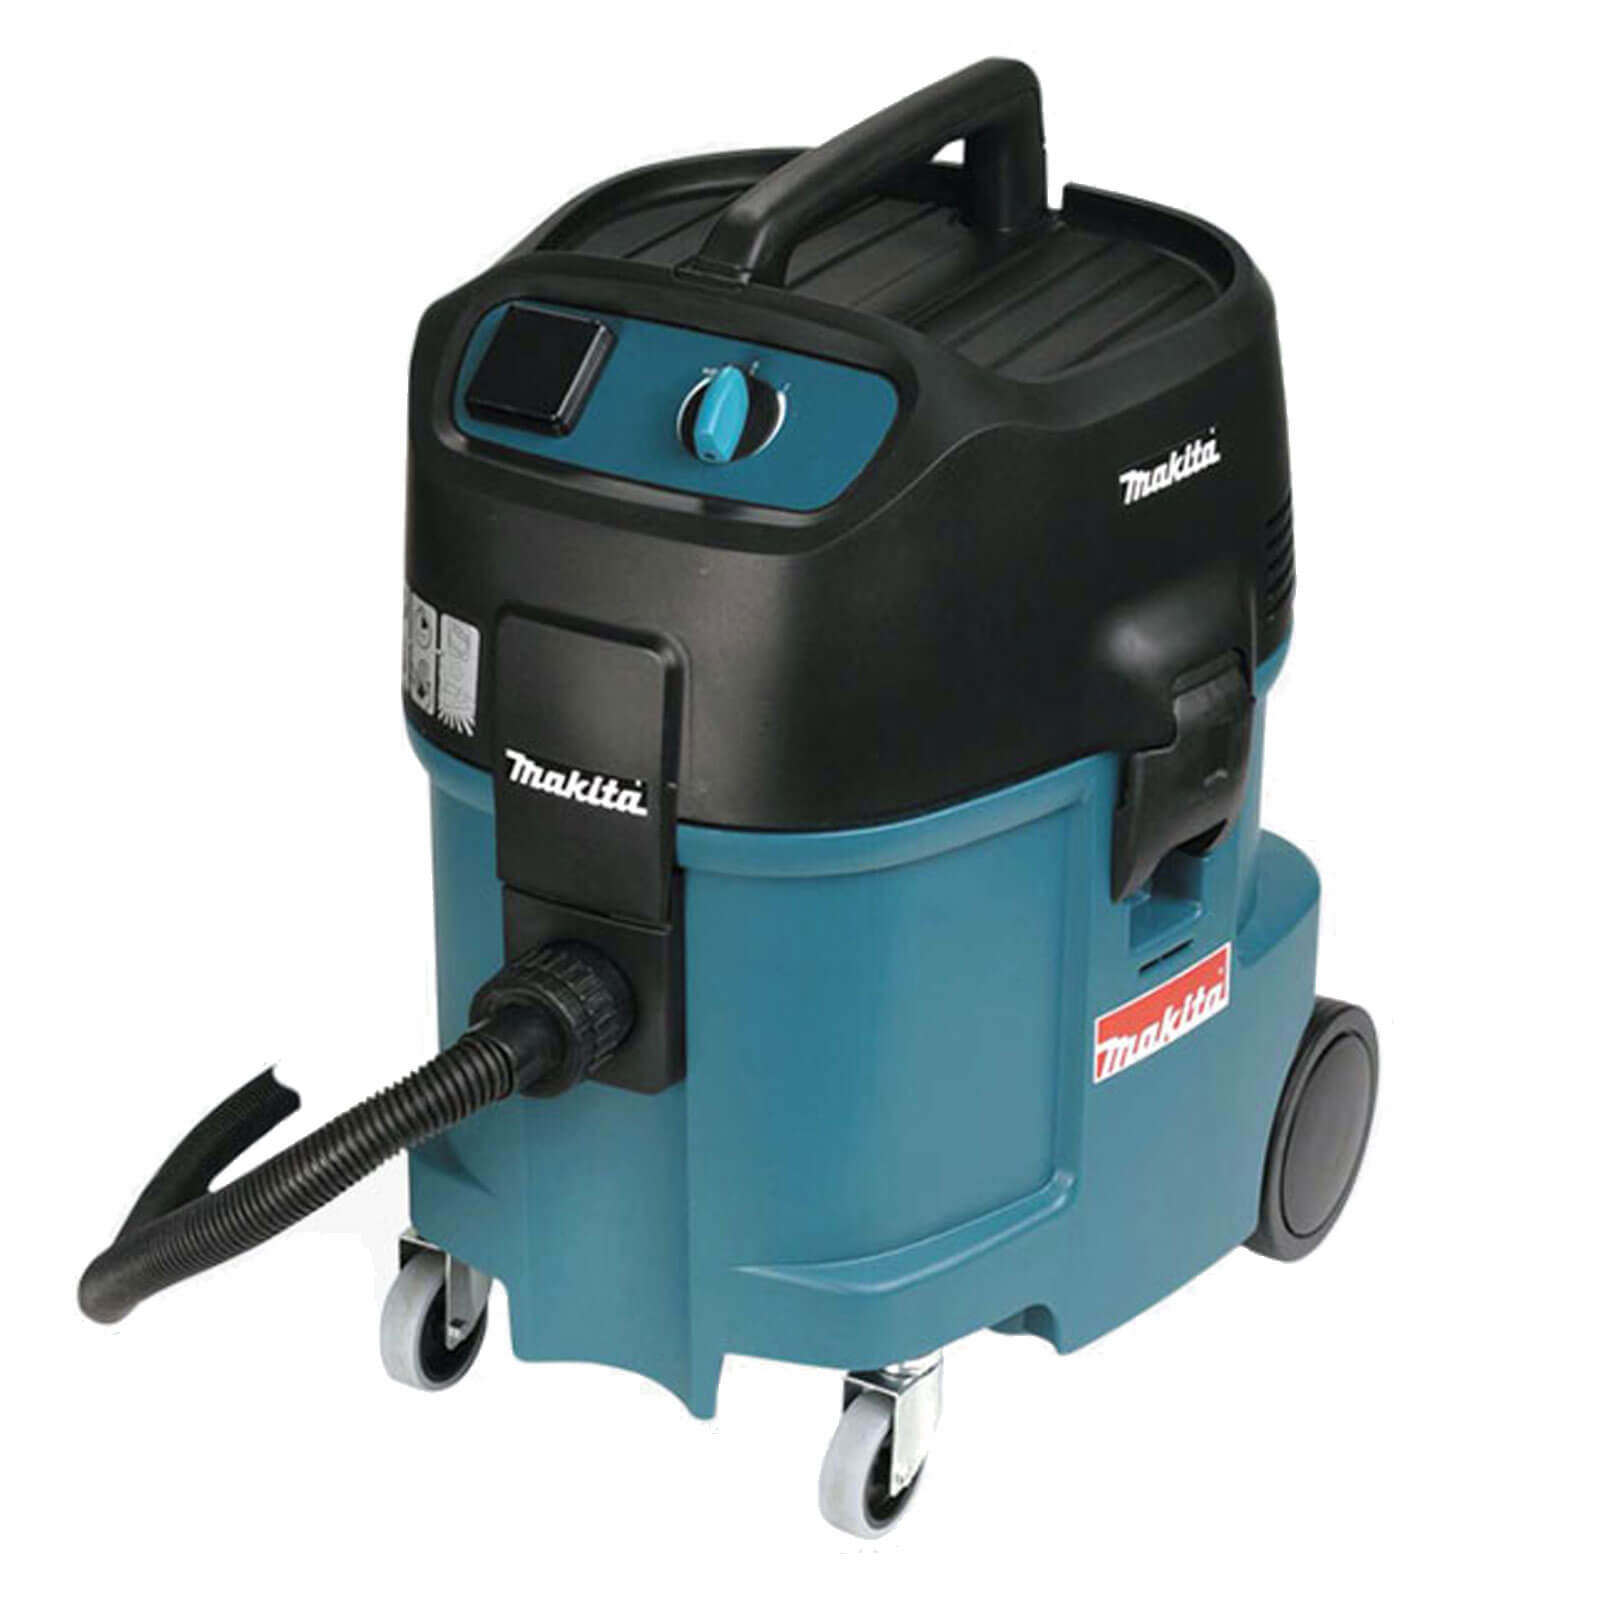 Image of Makita 447L Wet & Dry Dust Extractor with Power Tool Socket 1750w 45L 110v